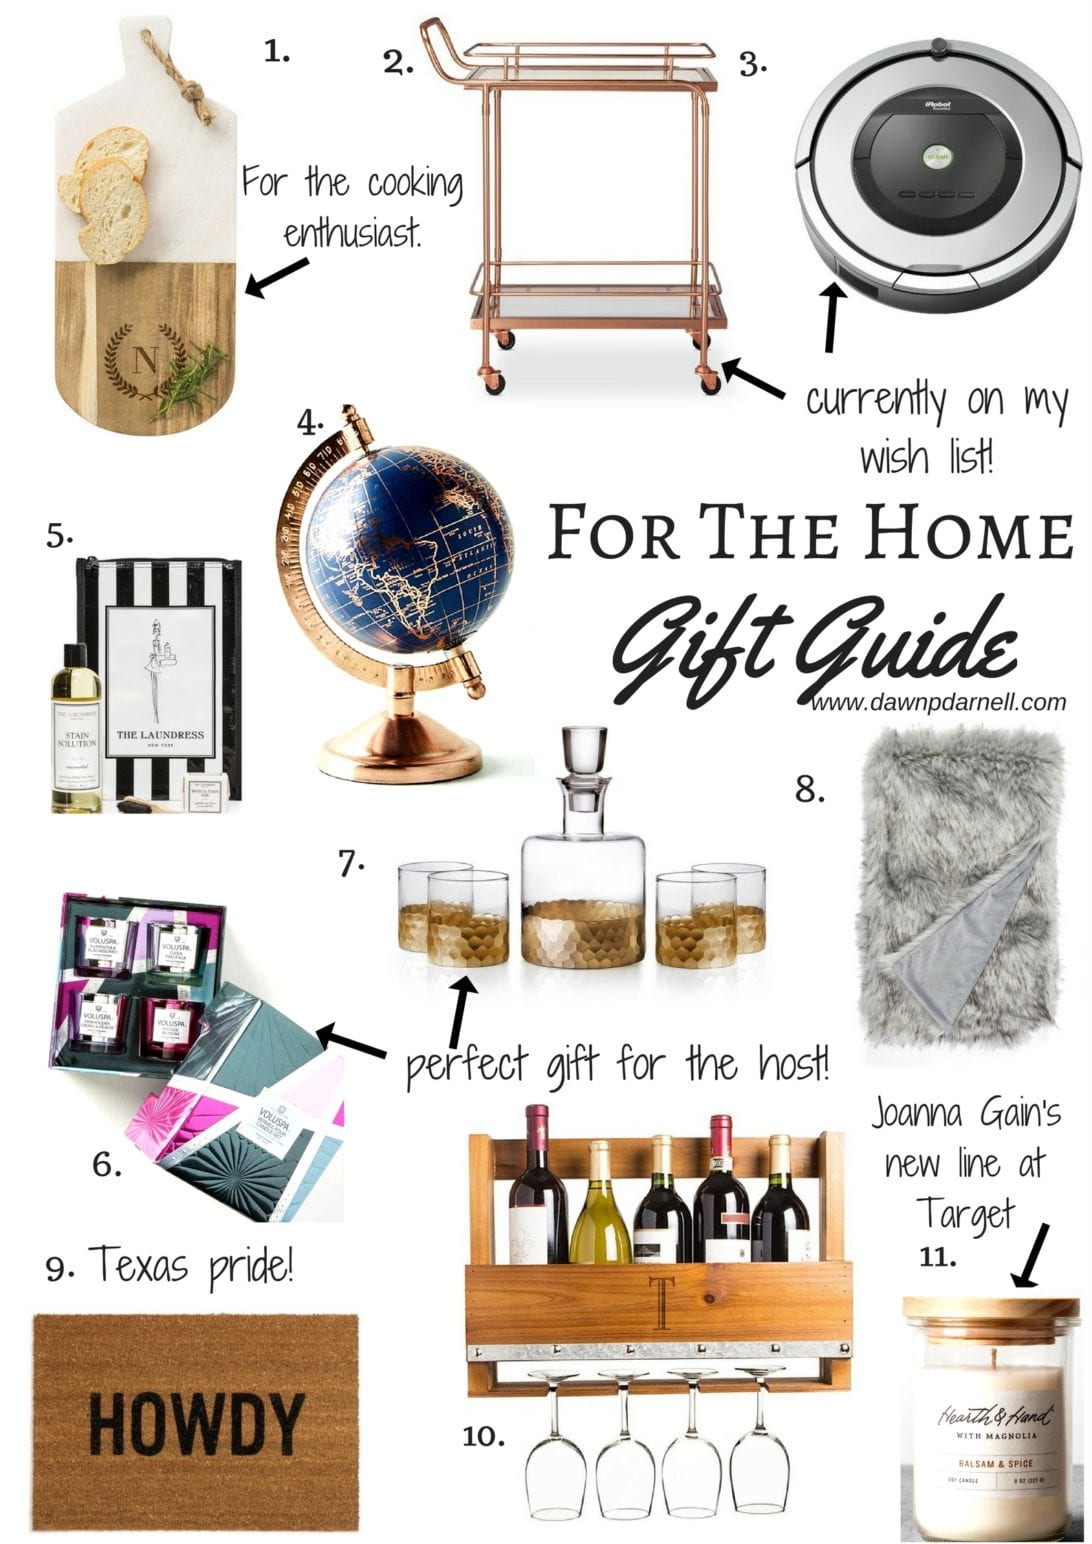 Gift ideas for the home, home gift guide, christmas gift guide, Monogram Marble & Wood Serving Board,Metal, Glass, and Leather Bar Cart,Roomba® 860 Robotic Vacuum,Decorative Globe,Stain Removal Kit,Voluspa Maison Mini Candle Gift Set, 'Daphne' Decanter & Whiskey Glasses,Fox Faux Fur Throw Blanket,'Howdy' Doormat,Personalized Rustic Wall Wine Rack & Glass Holder, Hearth & Hand with Magnolia Lidded Candle